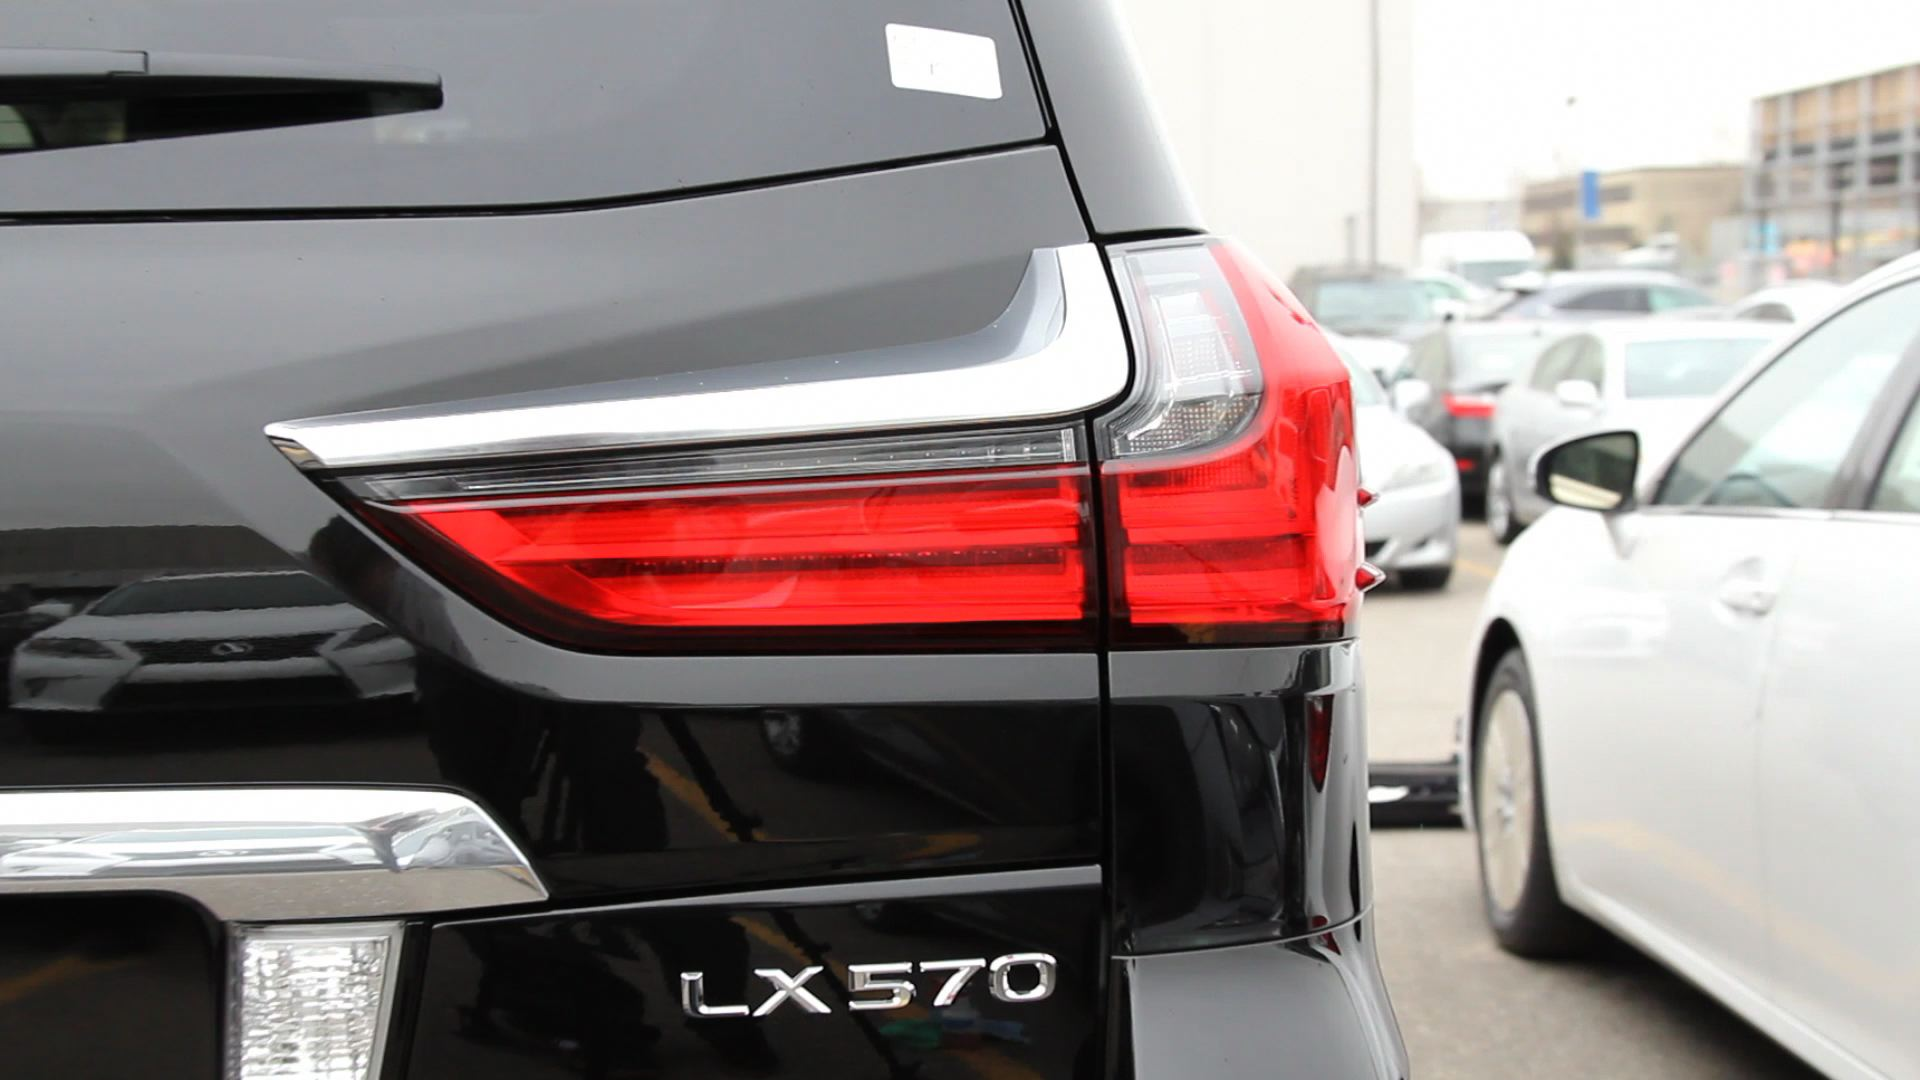 2016 Lexus LX 570 tail light